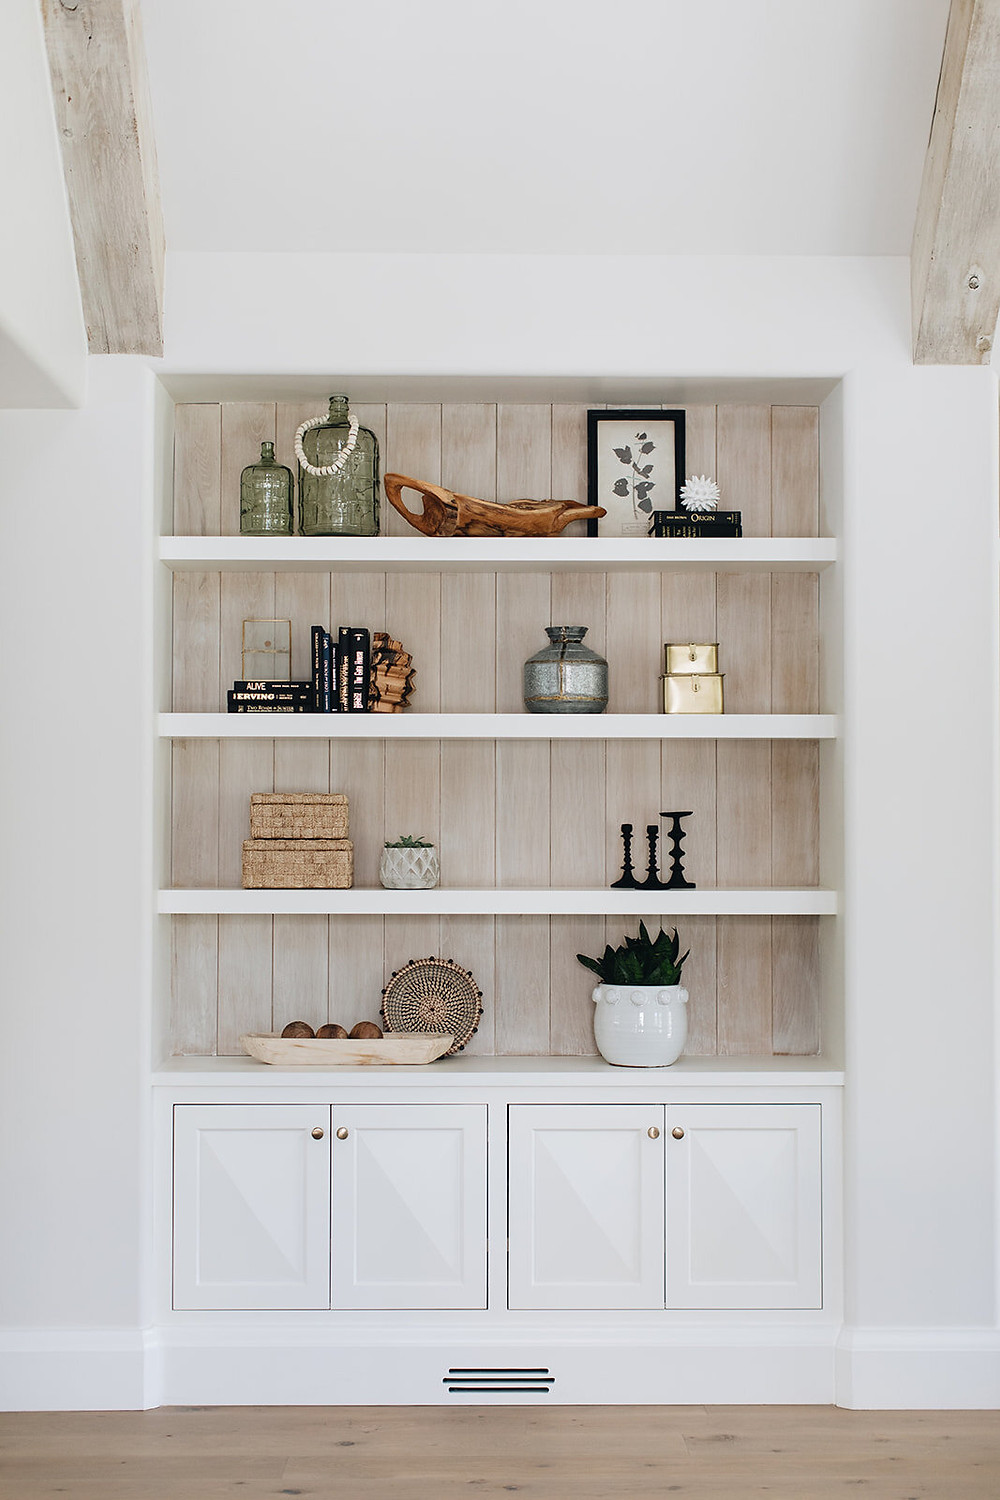 exposed wood beams vaulted ceiling built in cabinet with four doors white open shelves wood shiplap detail on wall with glass vase wooden box black framed picture candlesticks styling